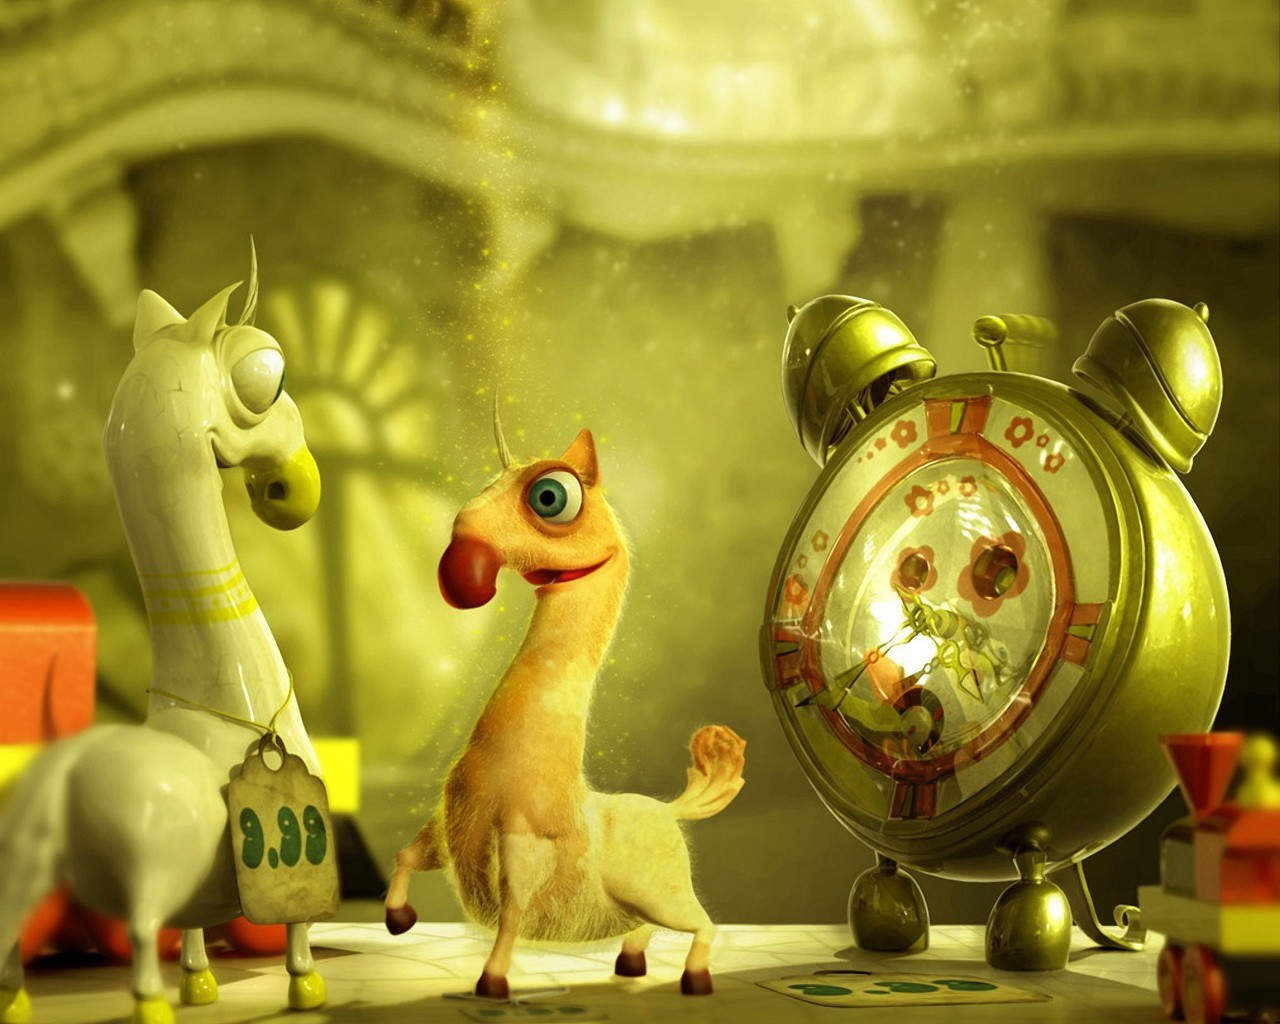 cartoons animated llama HD Wallpaper